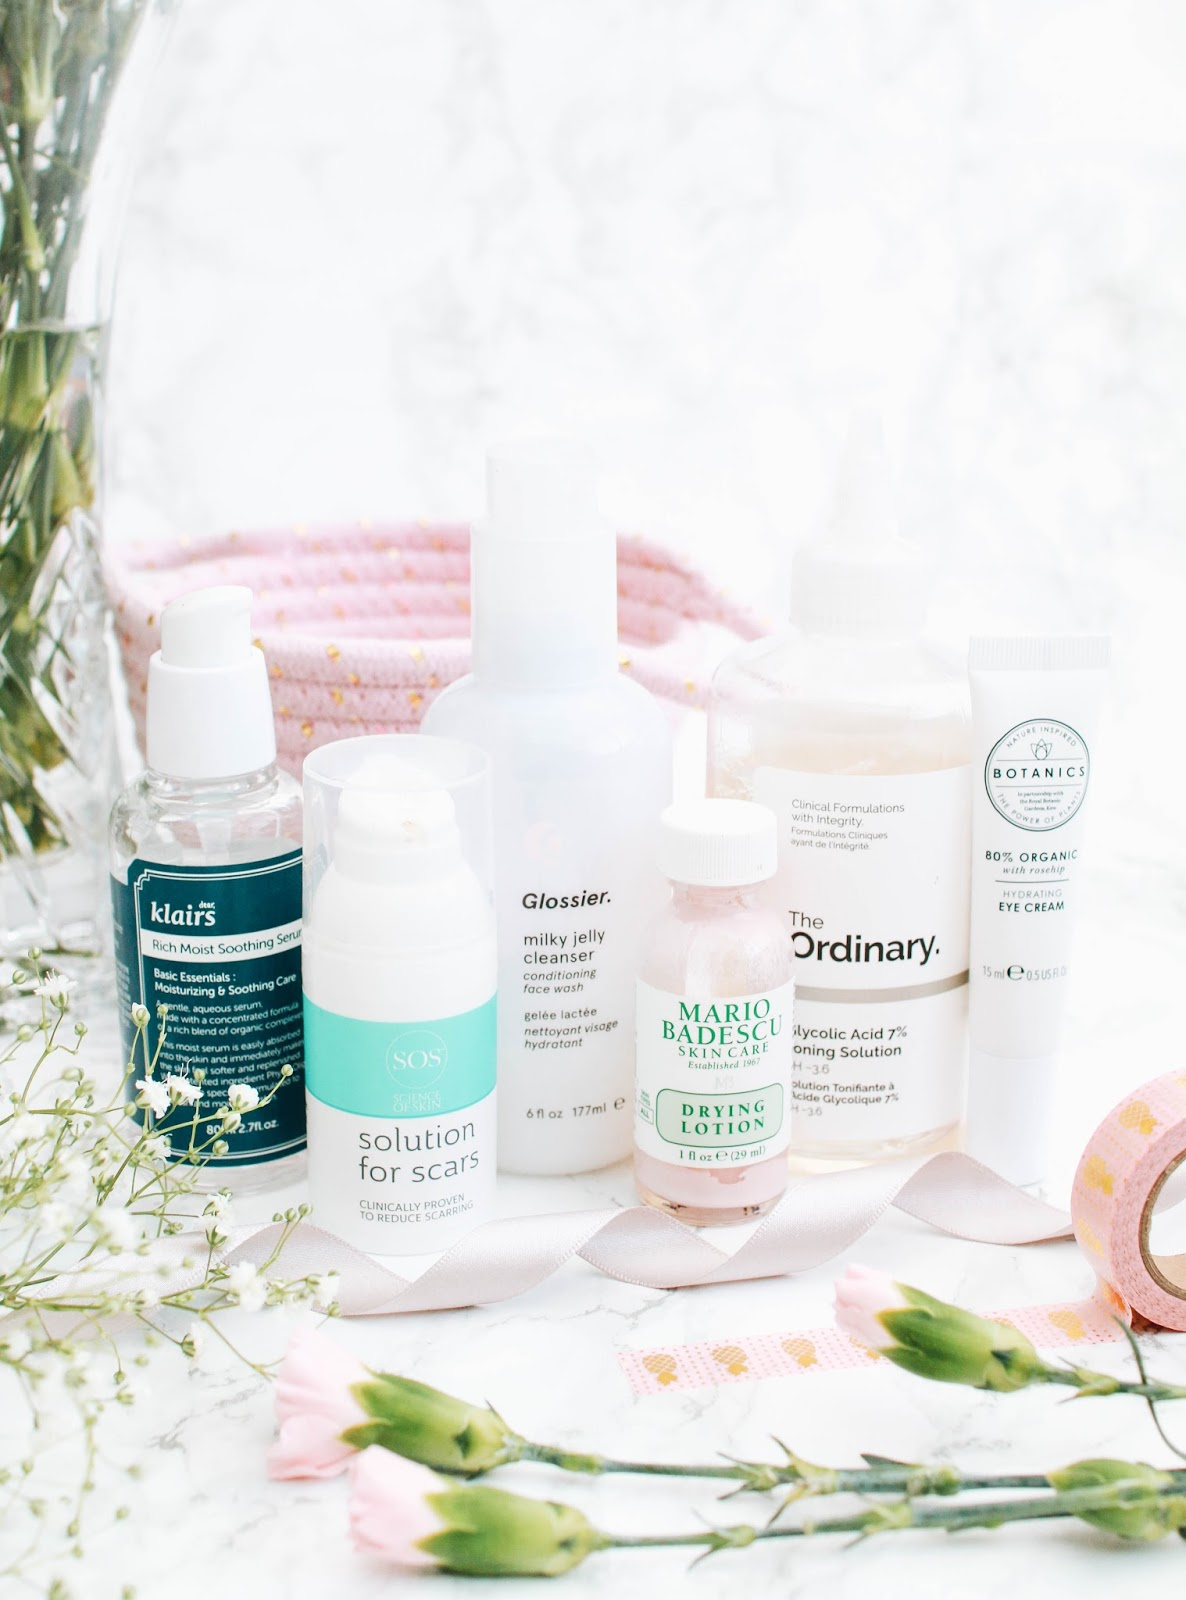 my current skincare routine, skincare, moisturiser, serum, cleanser, glossier, solution for scars, klairs, hydrate, mario badescu, drying lotion, eye cream, boots botanics, natural, organic, products, skin, beauty, makeup, lifestyle, forever september, beauty blog